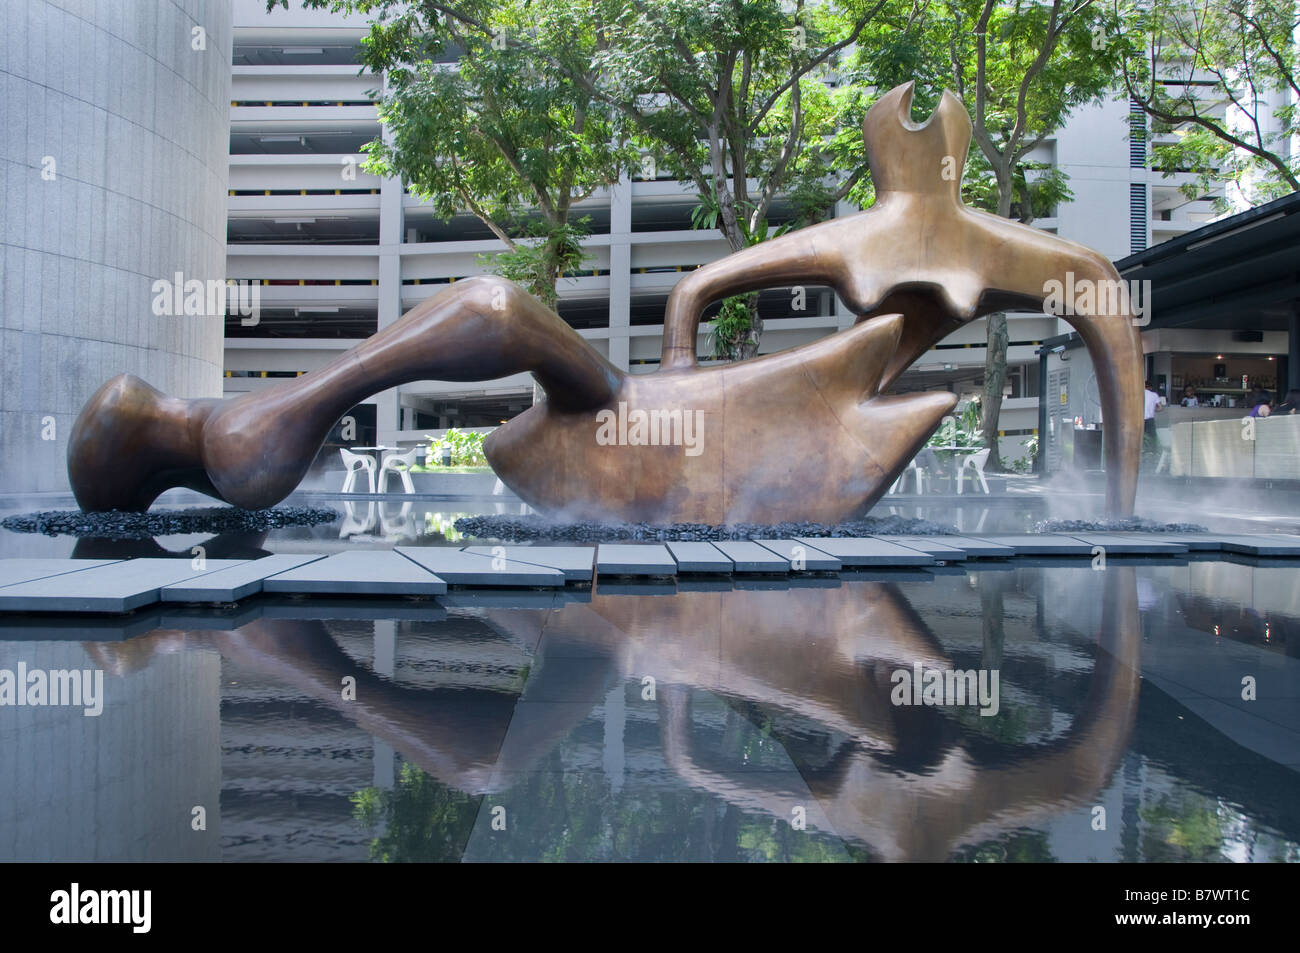 Large reclining figure Henry Spencer Moore Raffles Place Singapore CBD financial bank commercial centre - Stock Image